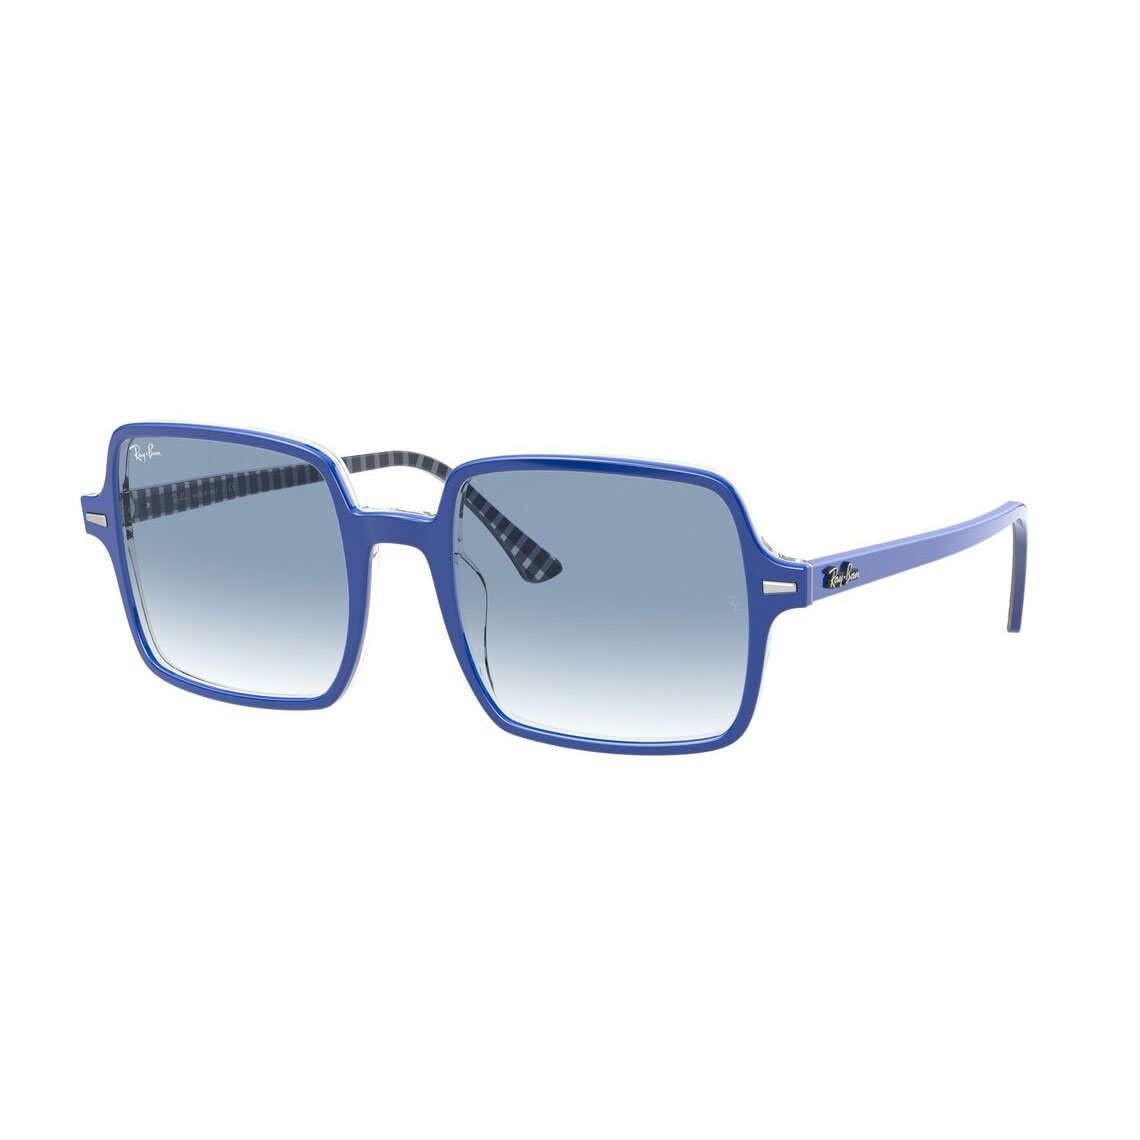 Ray-Ban Square II RB1973 13193F 5320